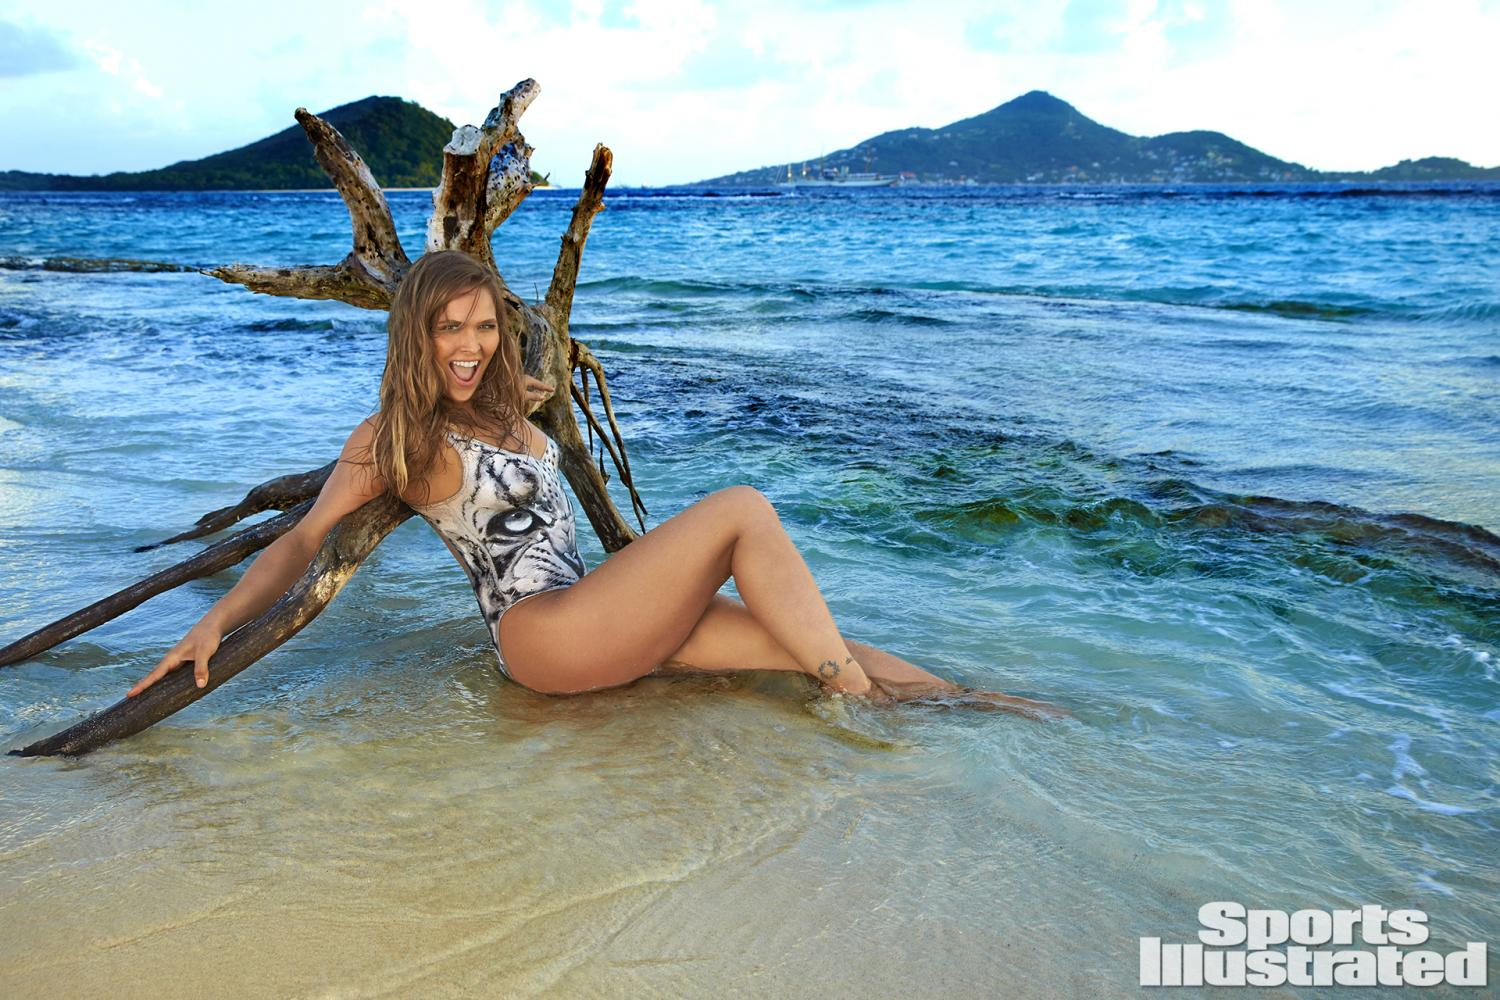 ronda-rousey-foi-capa-da-revista-sports-illustrated-so-de-bodypaint7